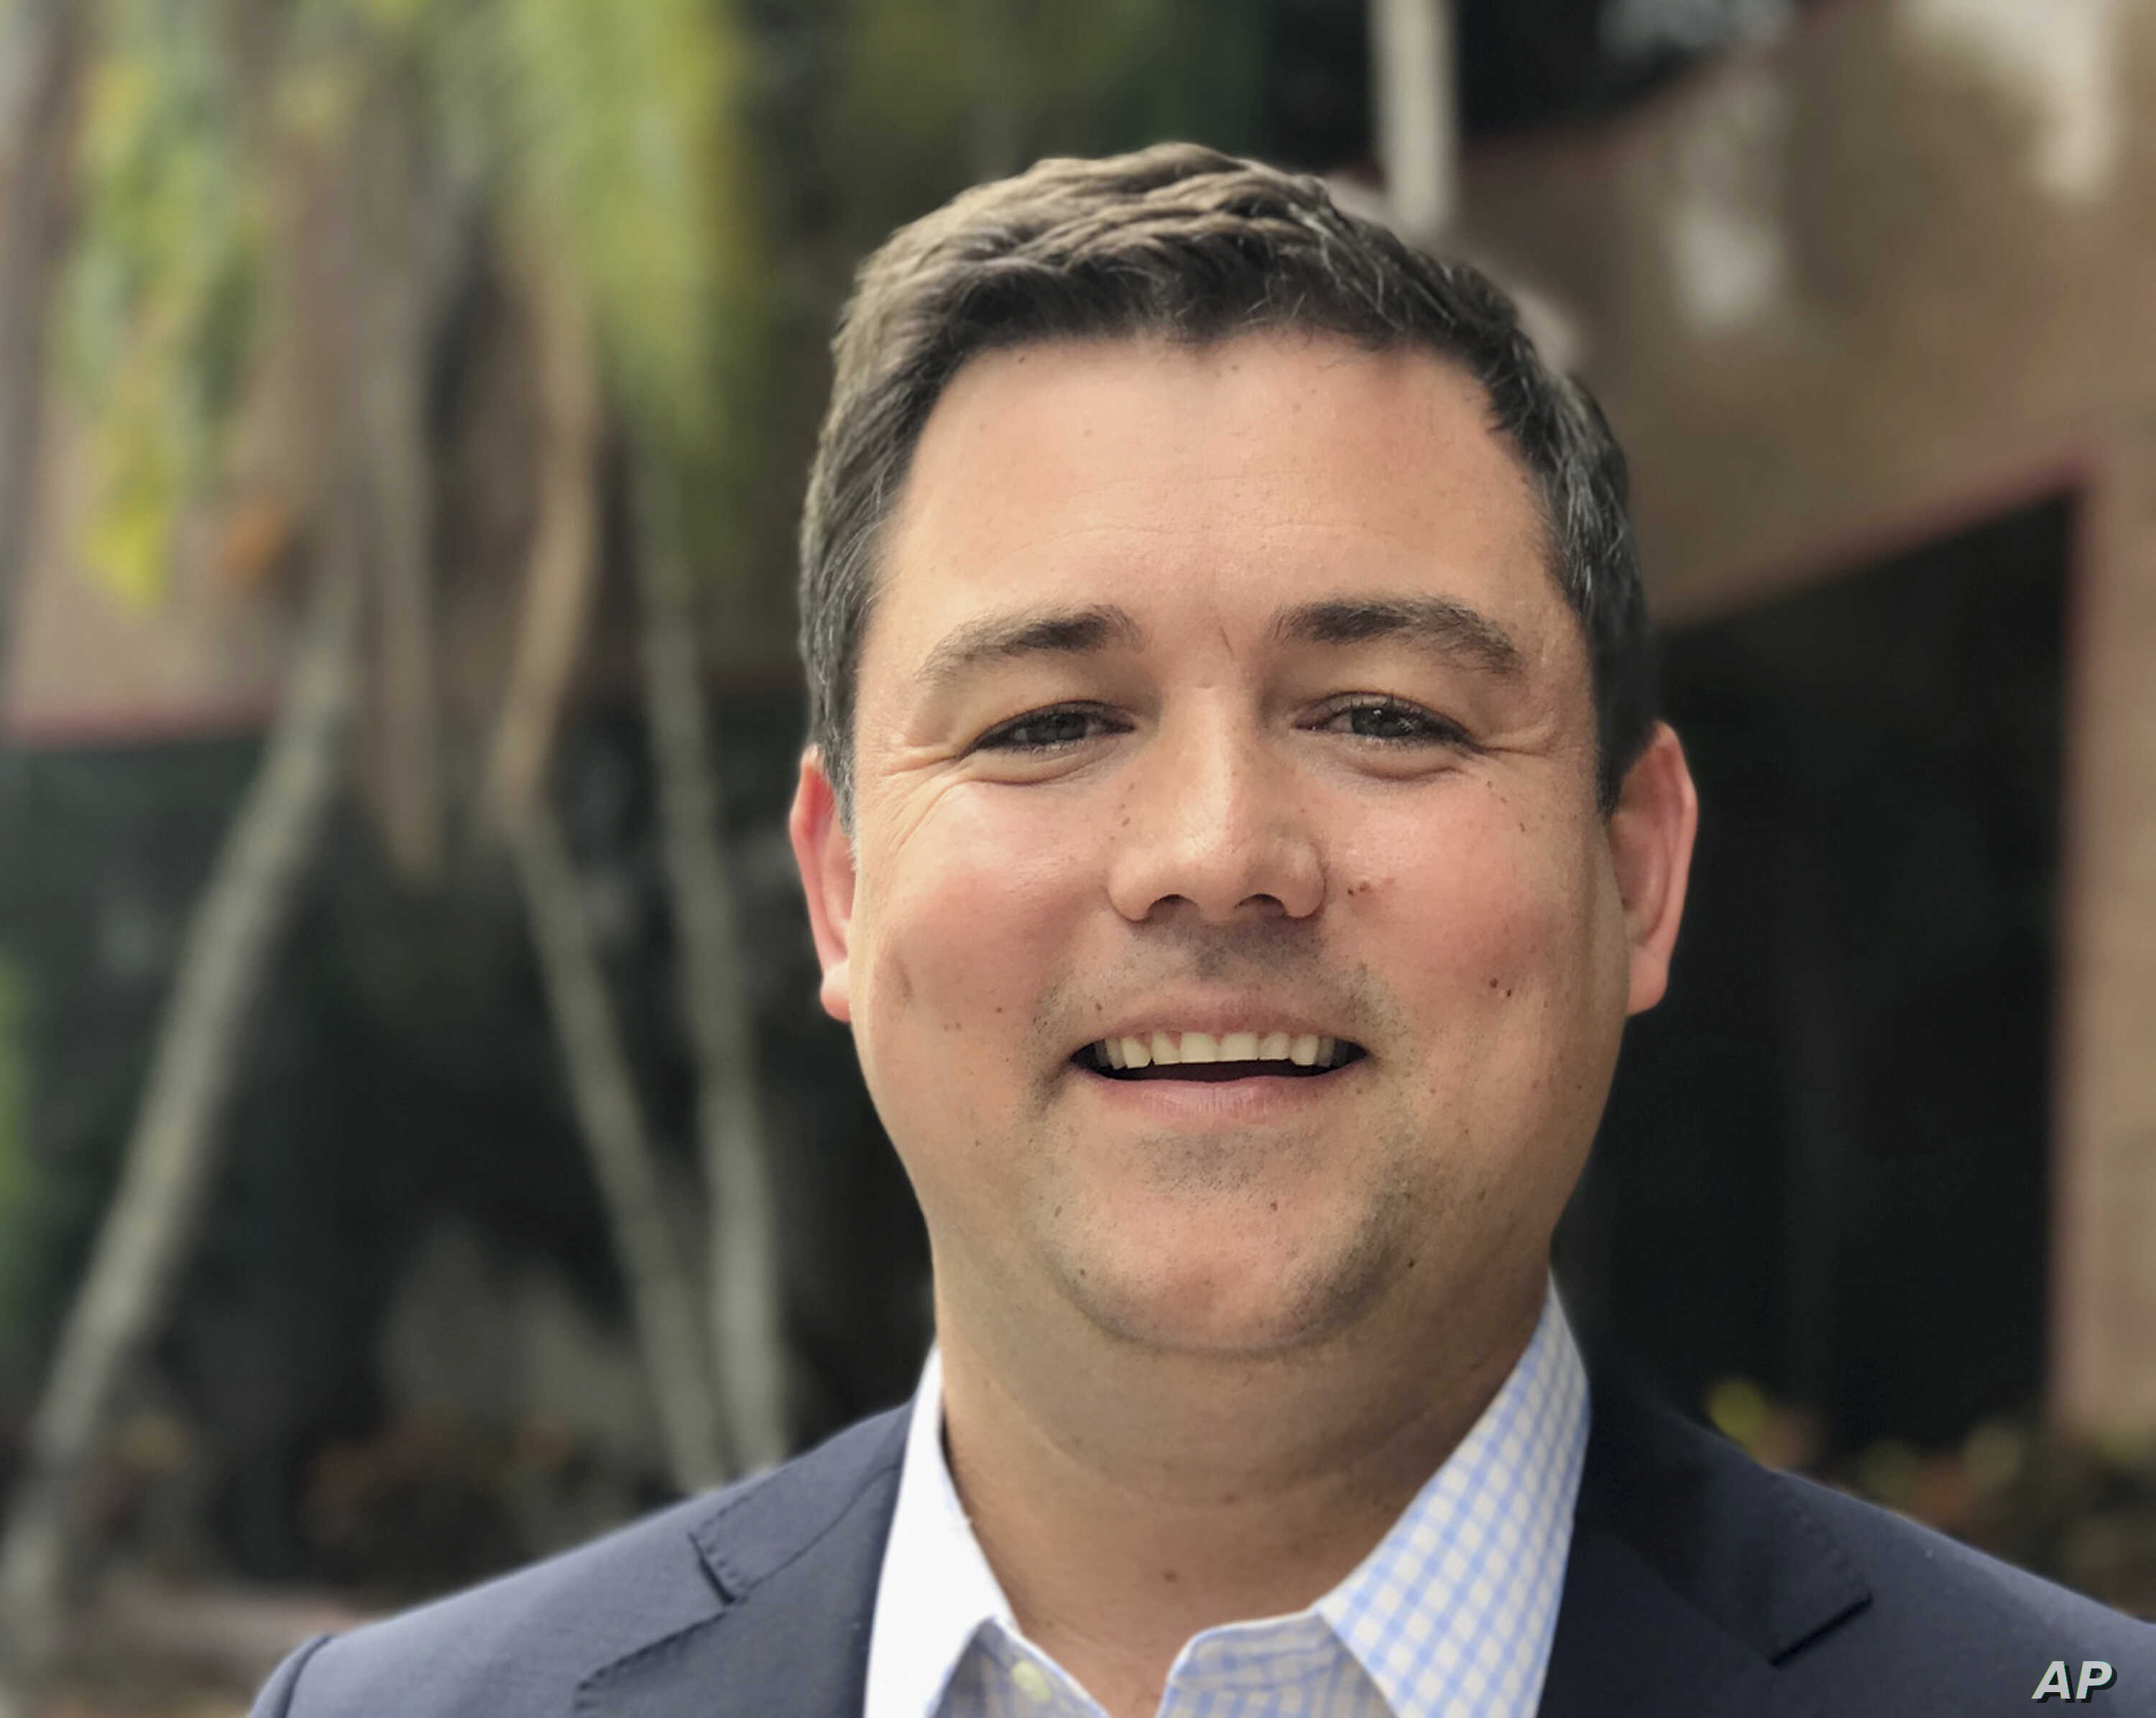 Christian Ziegler, the Florida Republican Party vice chairman photographed April 14, 2017, is among those expected to attend a social media summit Thursday in Washington.